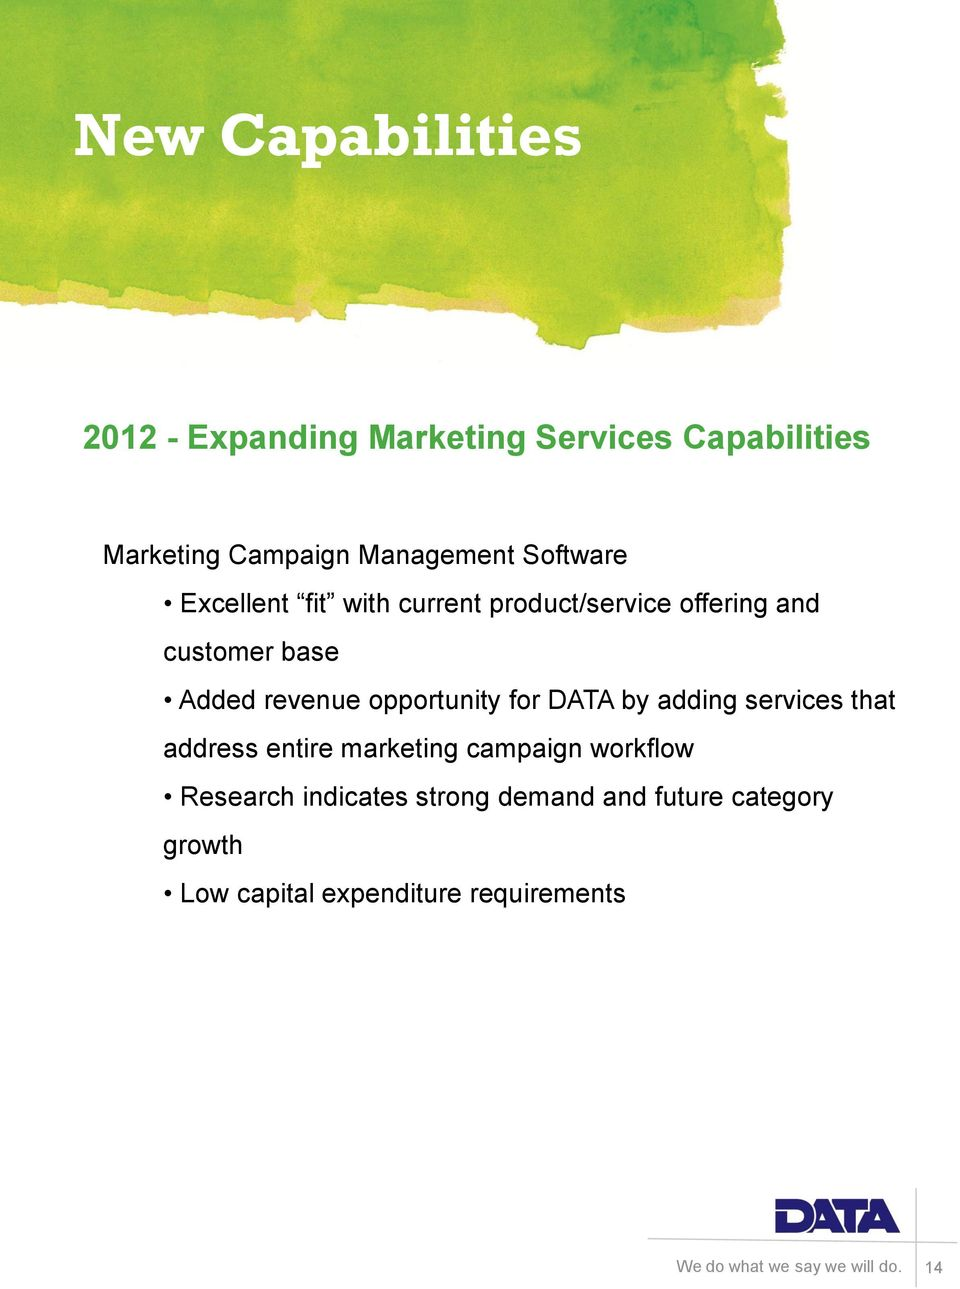 Added revenue opportunity for DATA by adding services that address entire marketing campaign